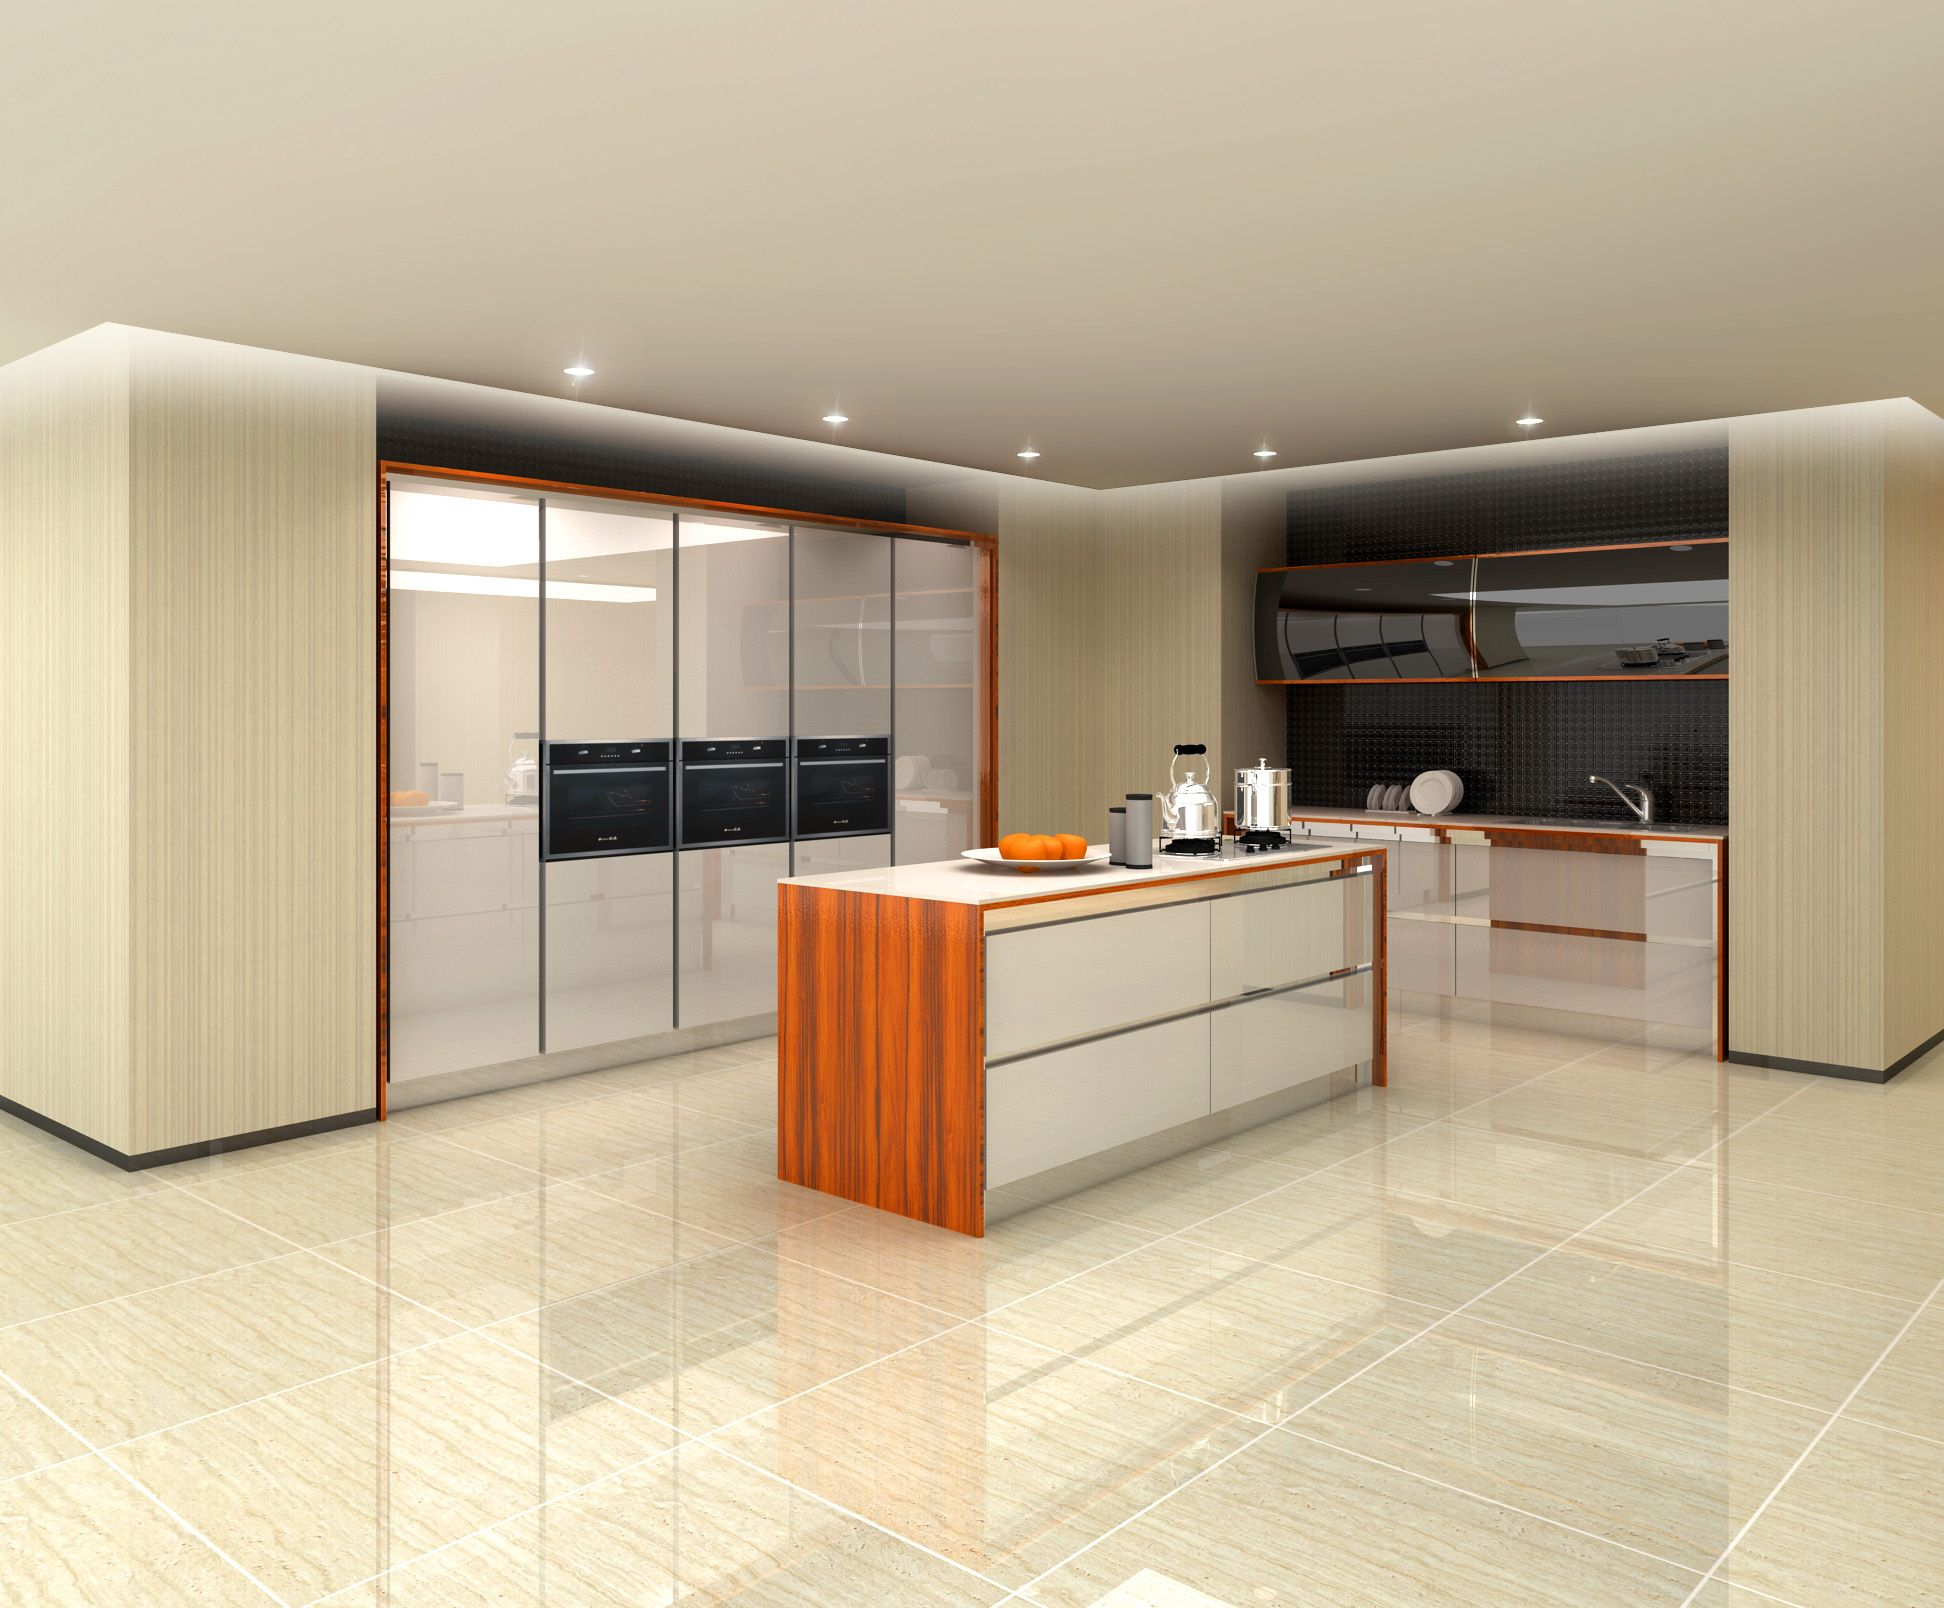 Kitchen Cabinet With Wood Veneer Finish OPPEIN Sydney Showroom Pi